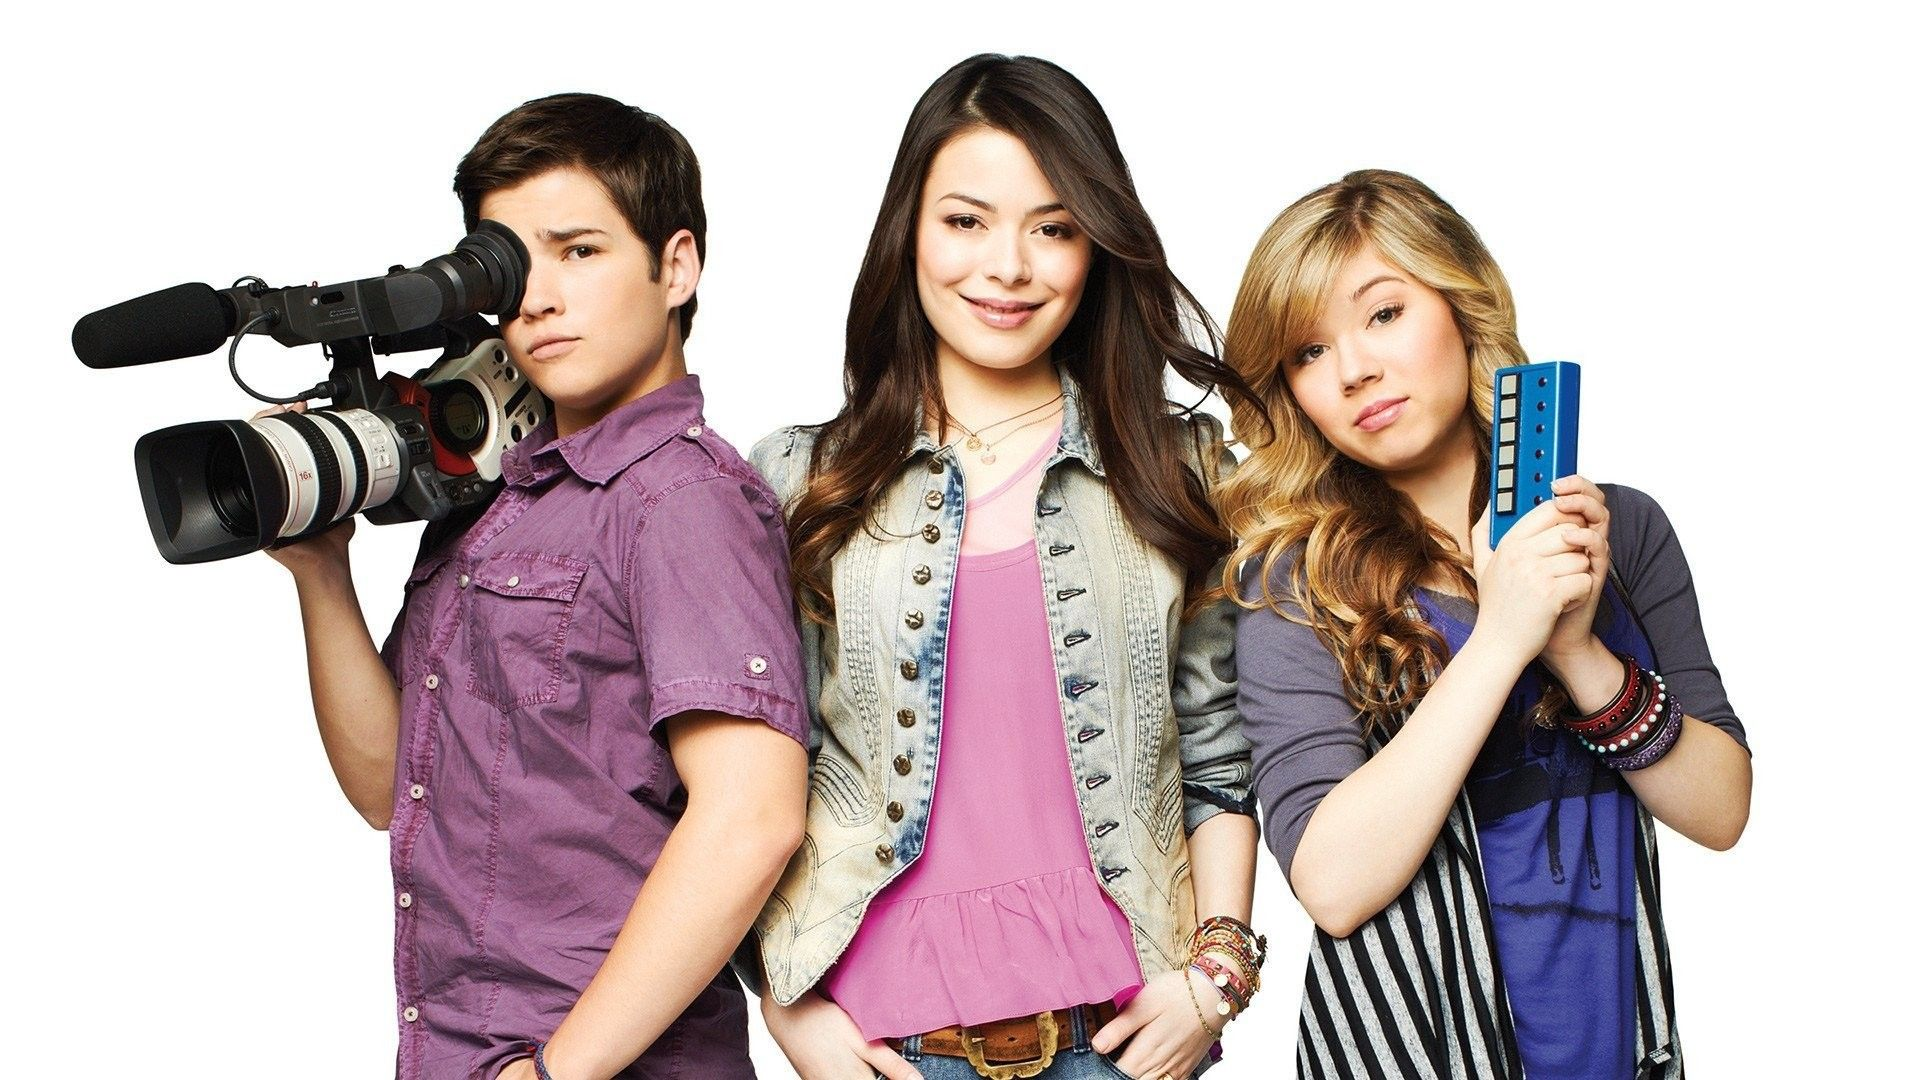 1920x1080 Icarly Wallpaper (72+ images)